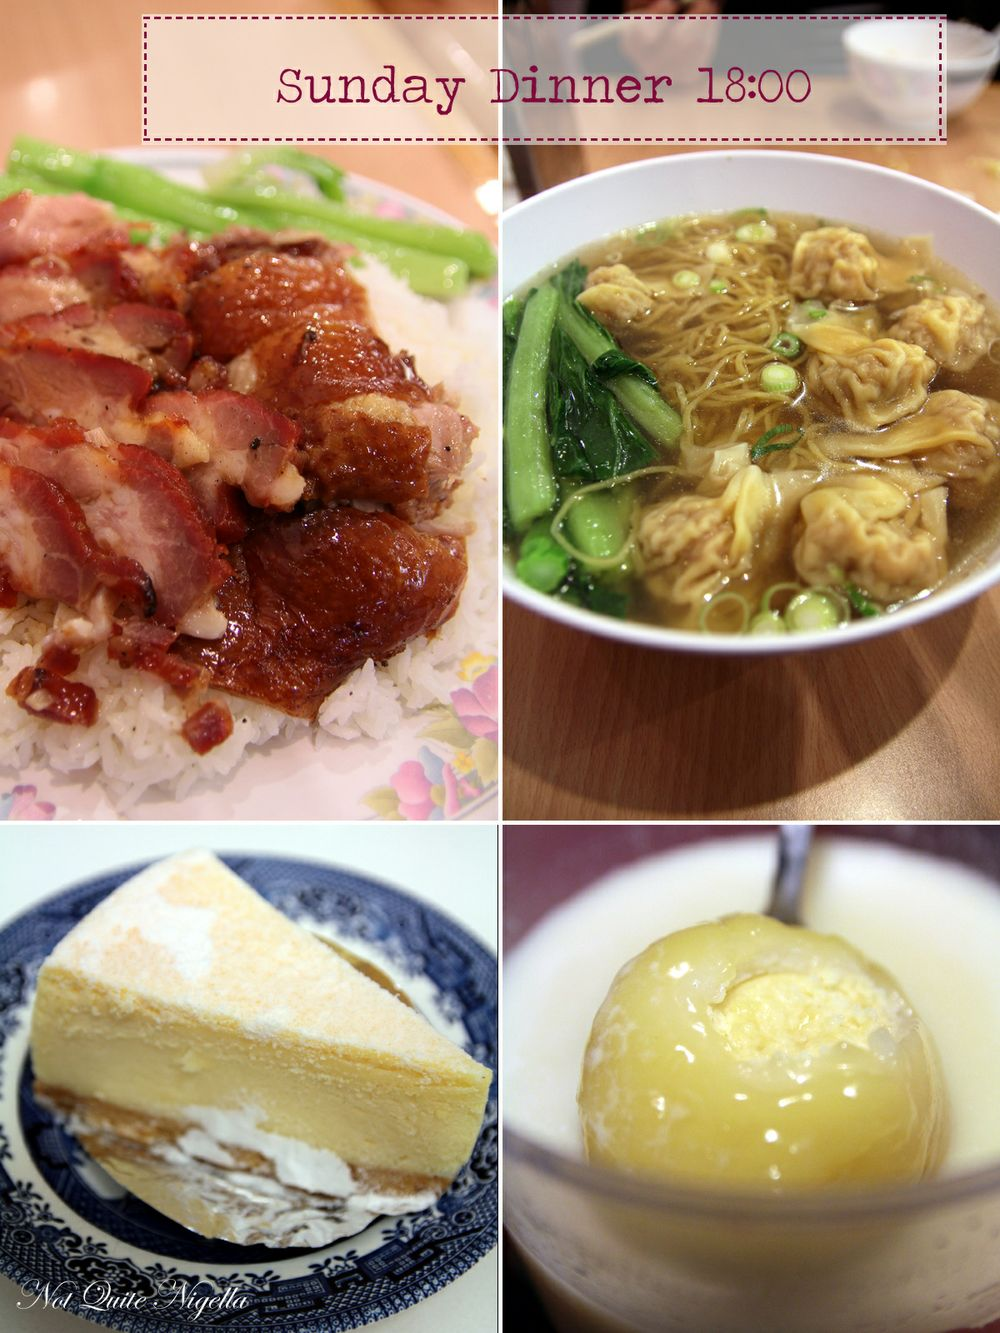 From Salads to Fourteen Courses: What I Eat In A Week